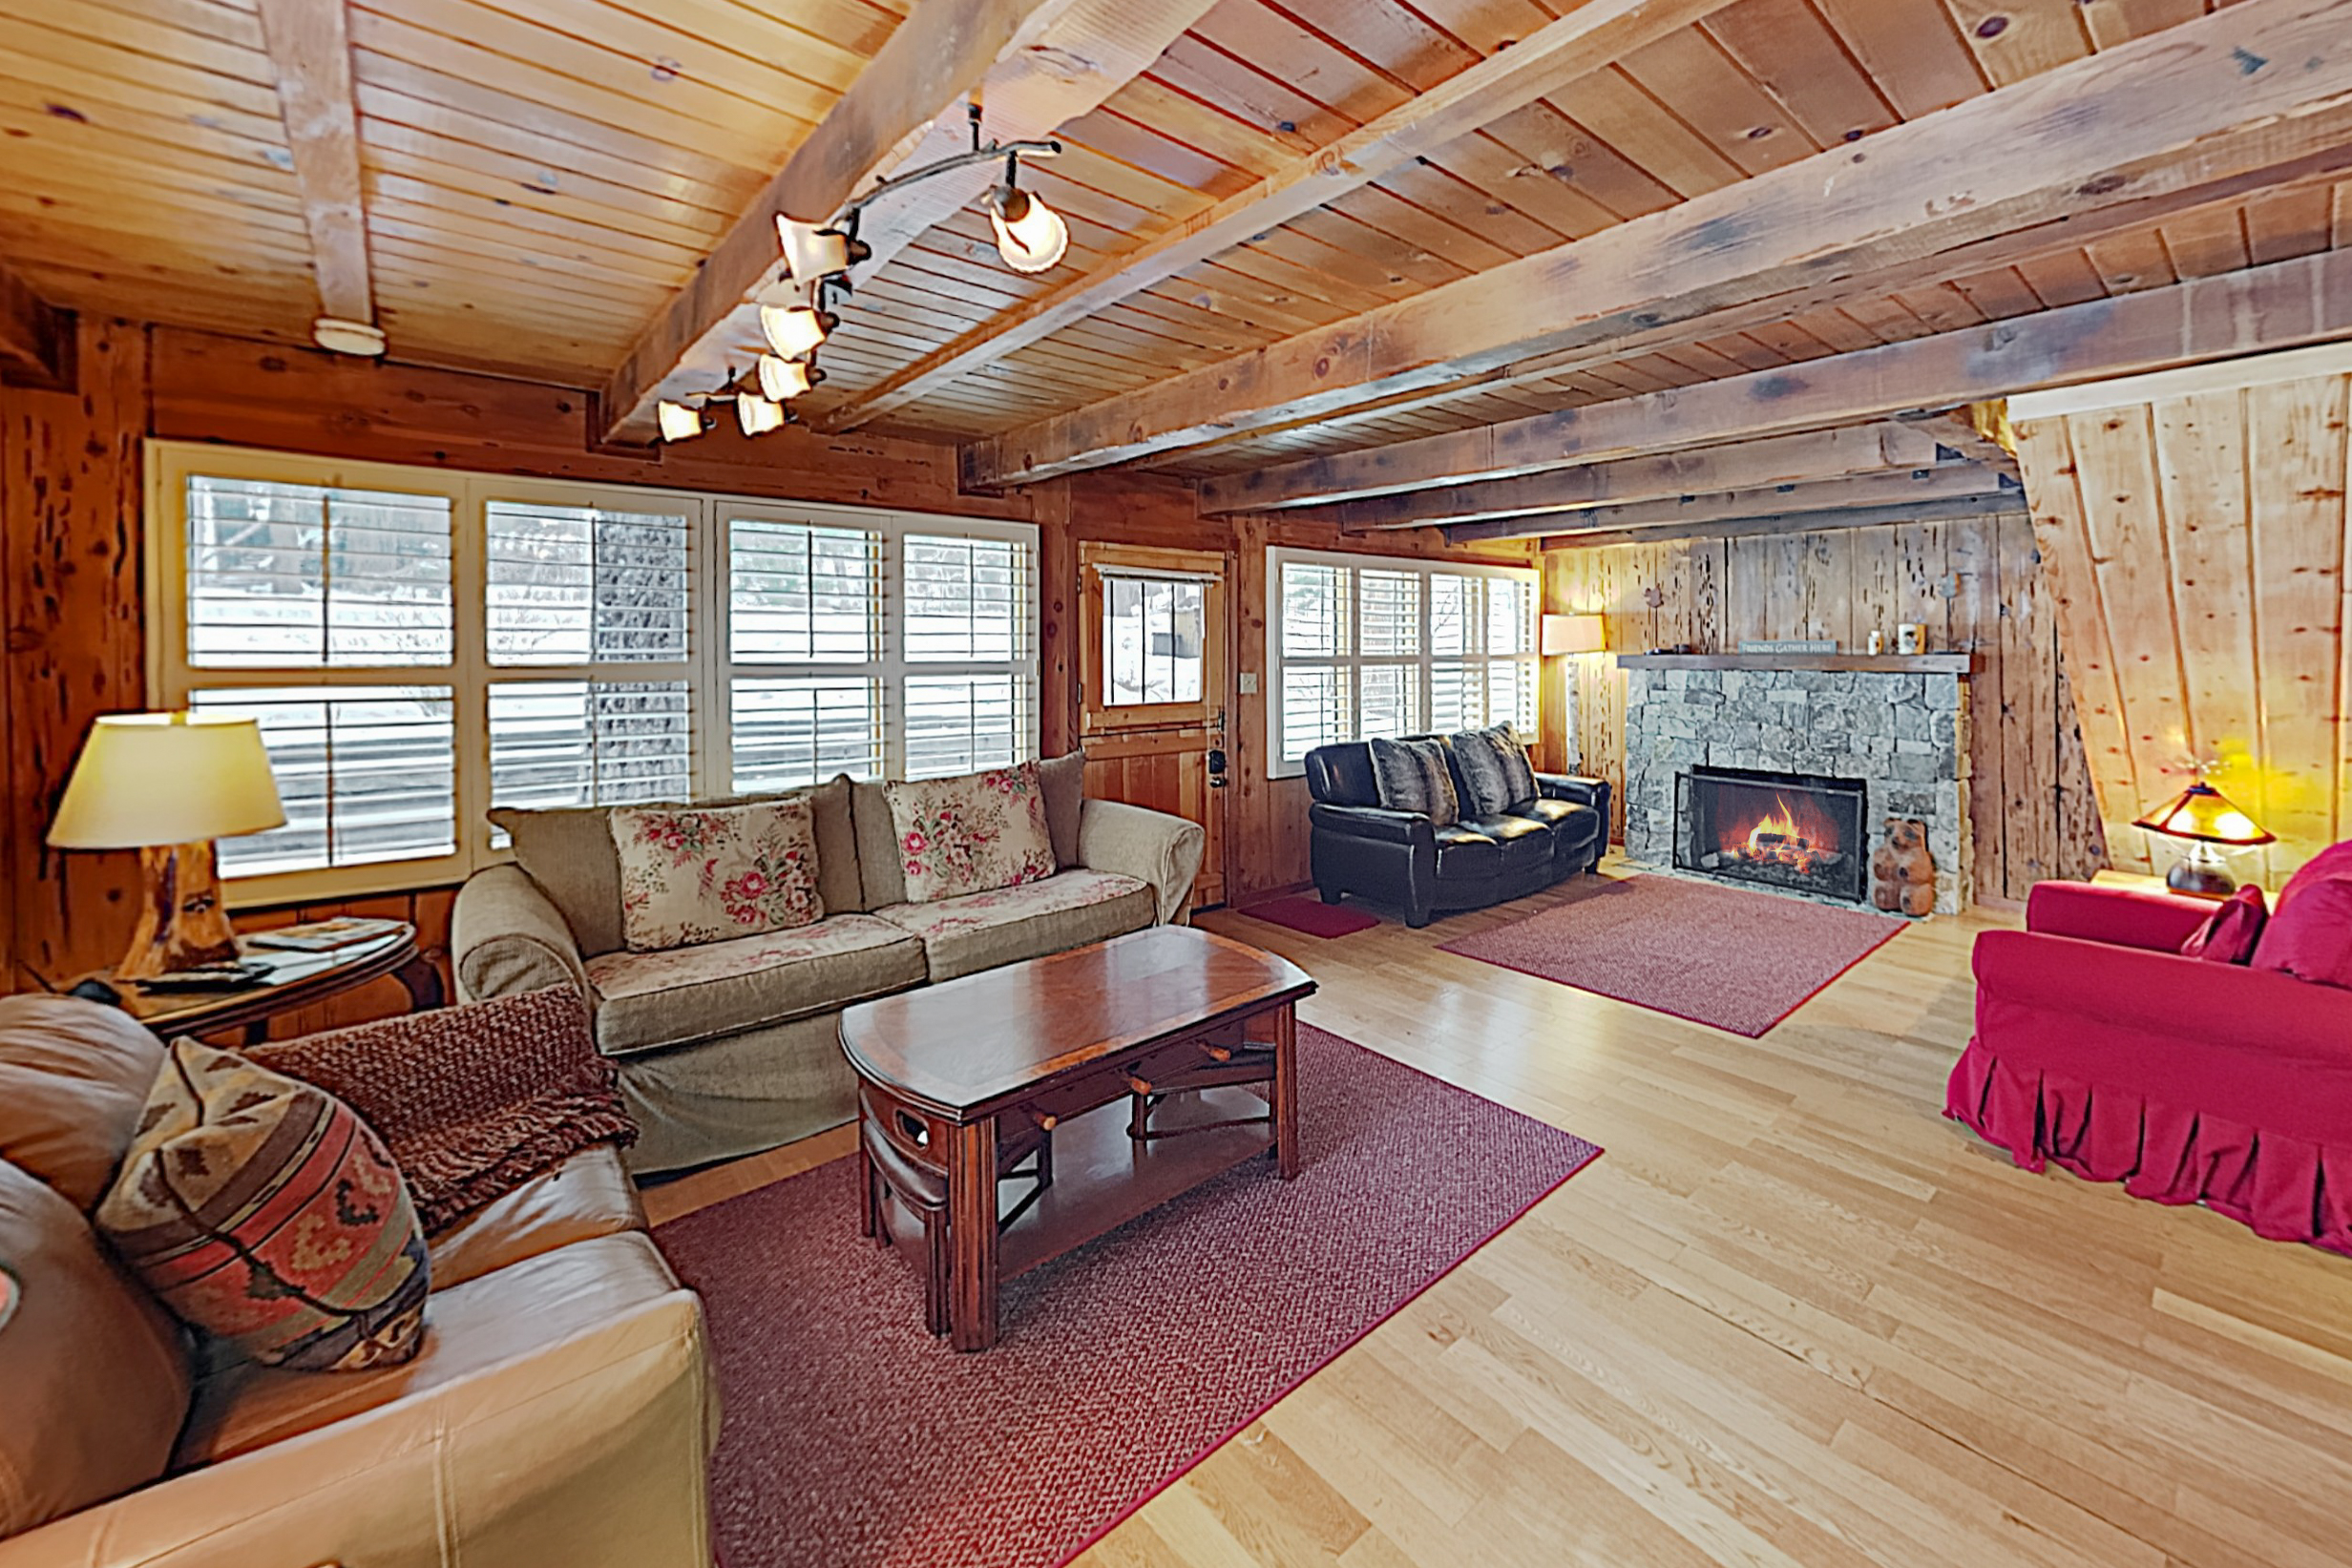 Homewood CA Vacation Rental Welcome to Homewood!